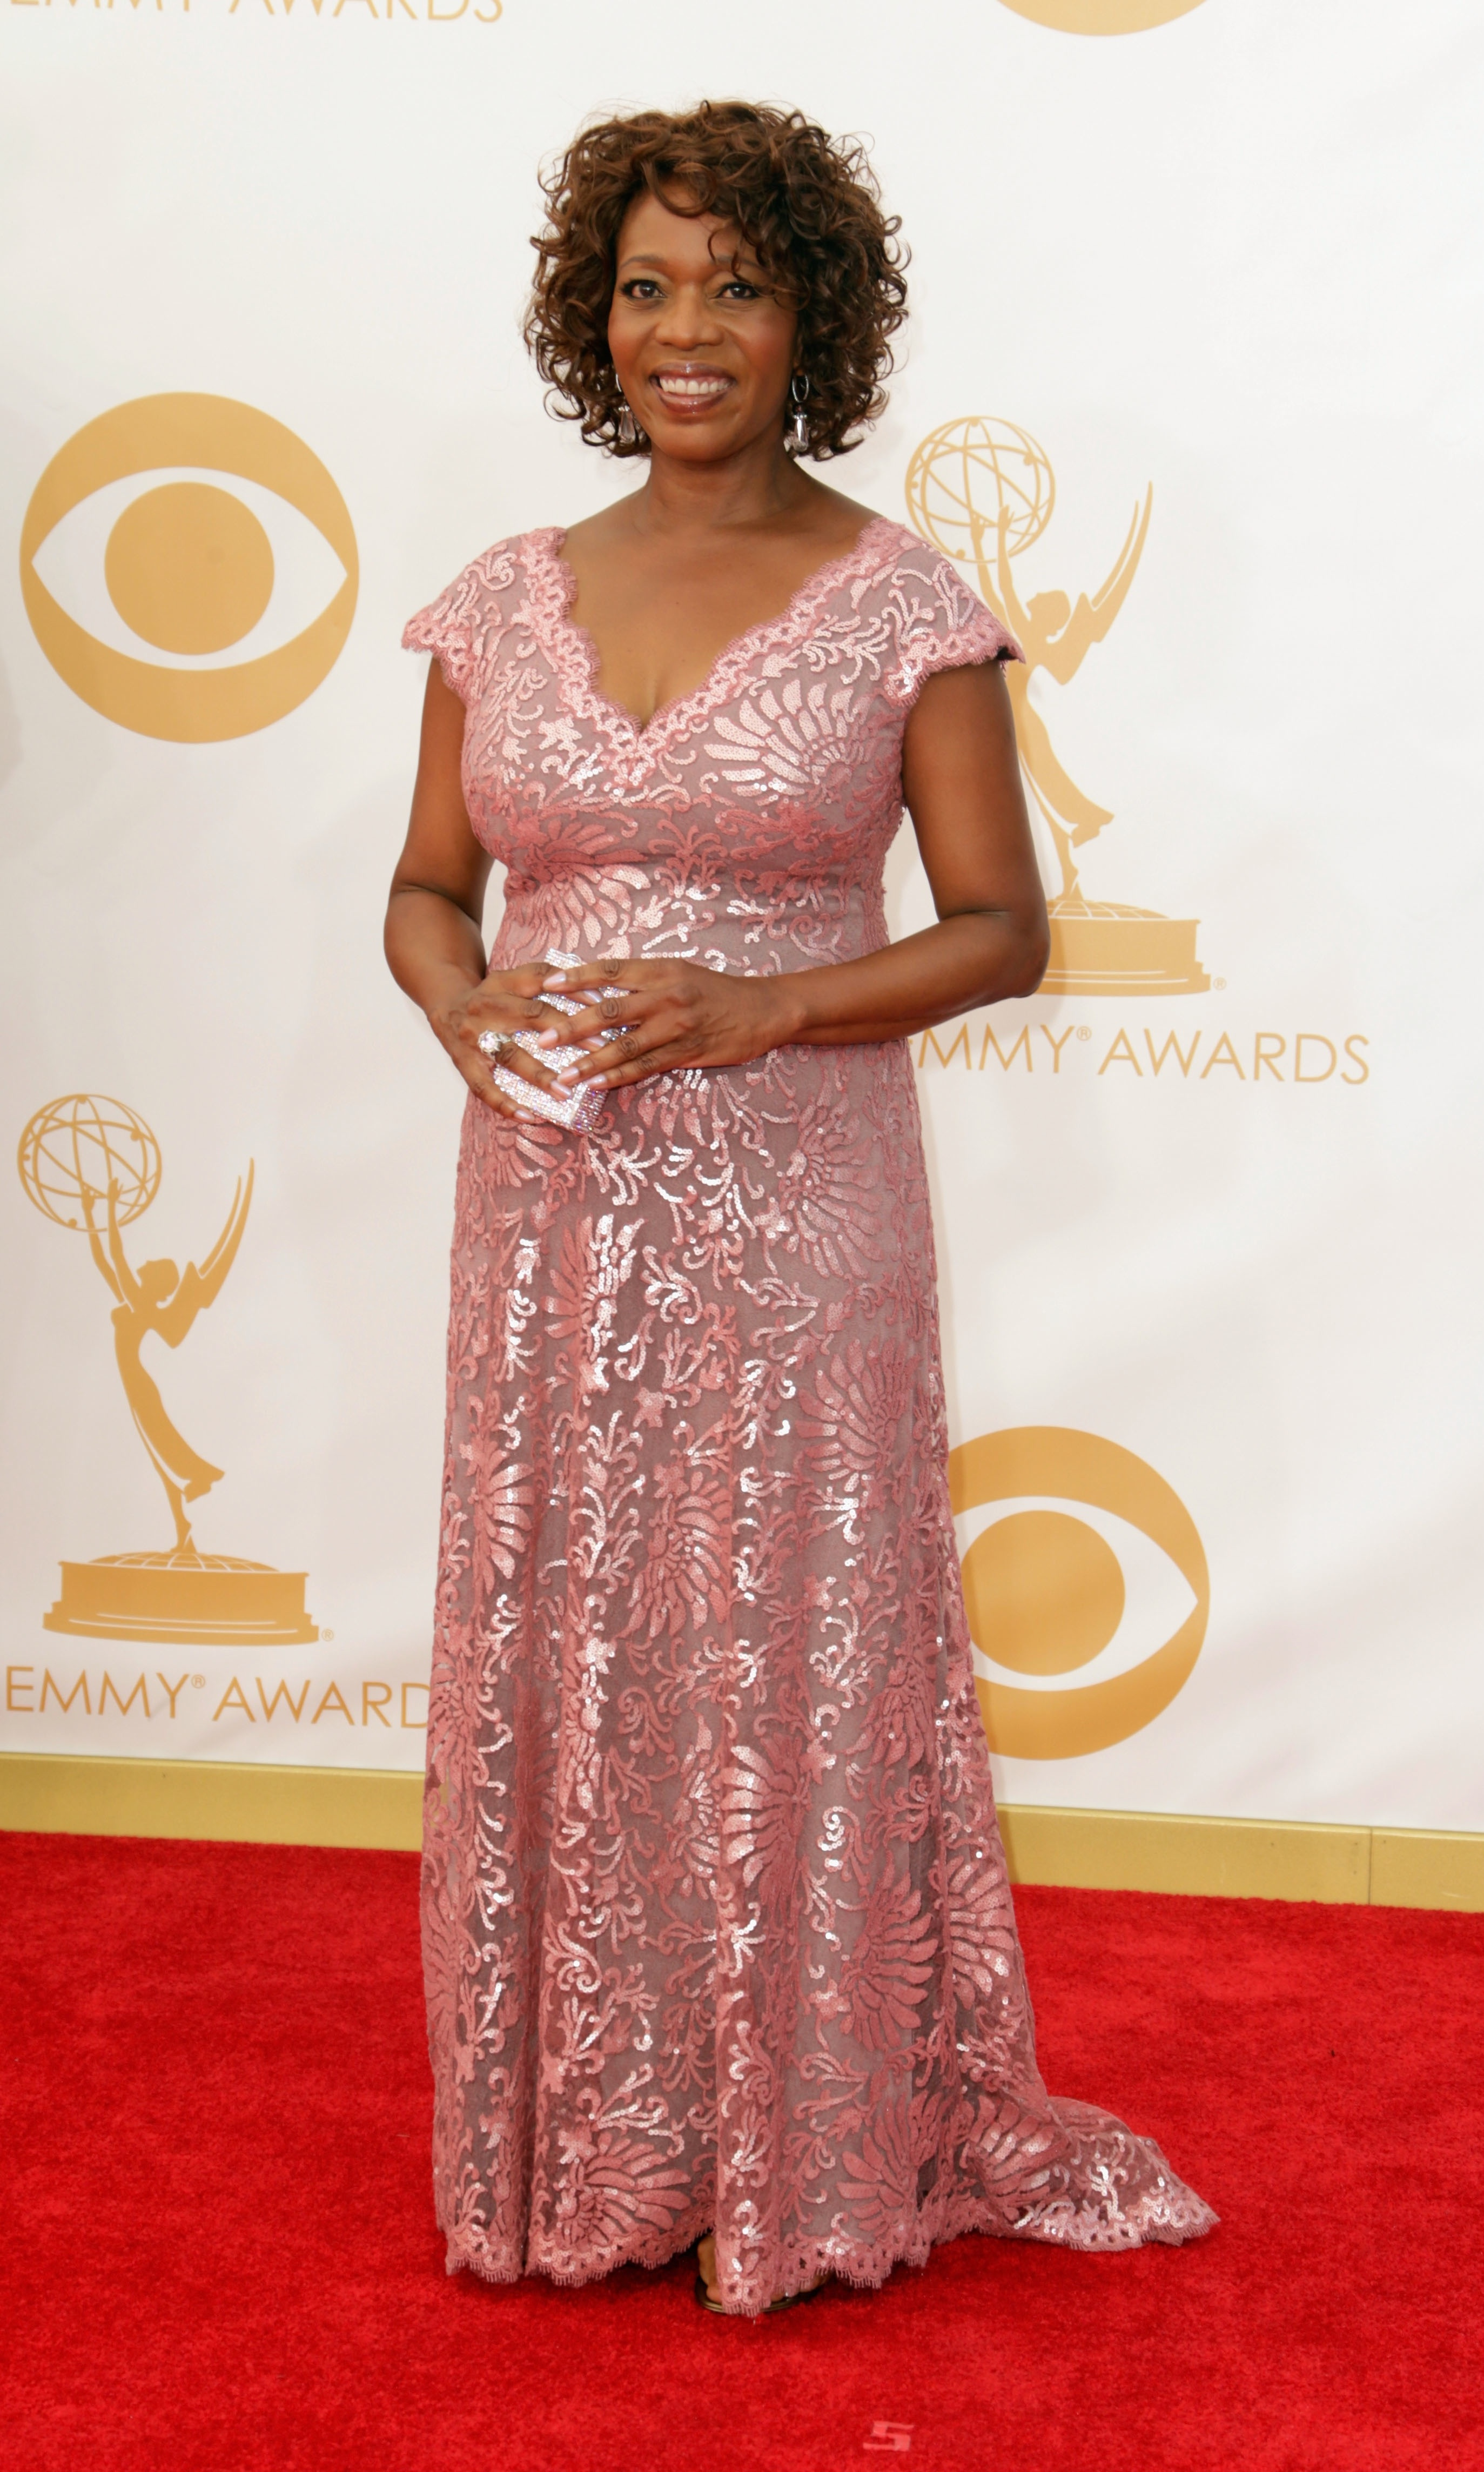 Emmy Award-nominee Alfre Woodard chose pale pink and limited accessories to let the finish shine in this stunning, lacy number.